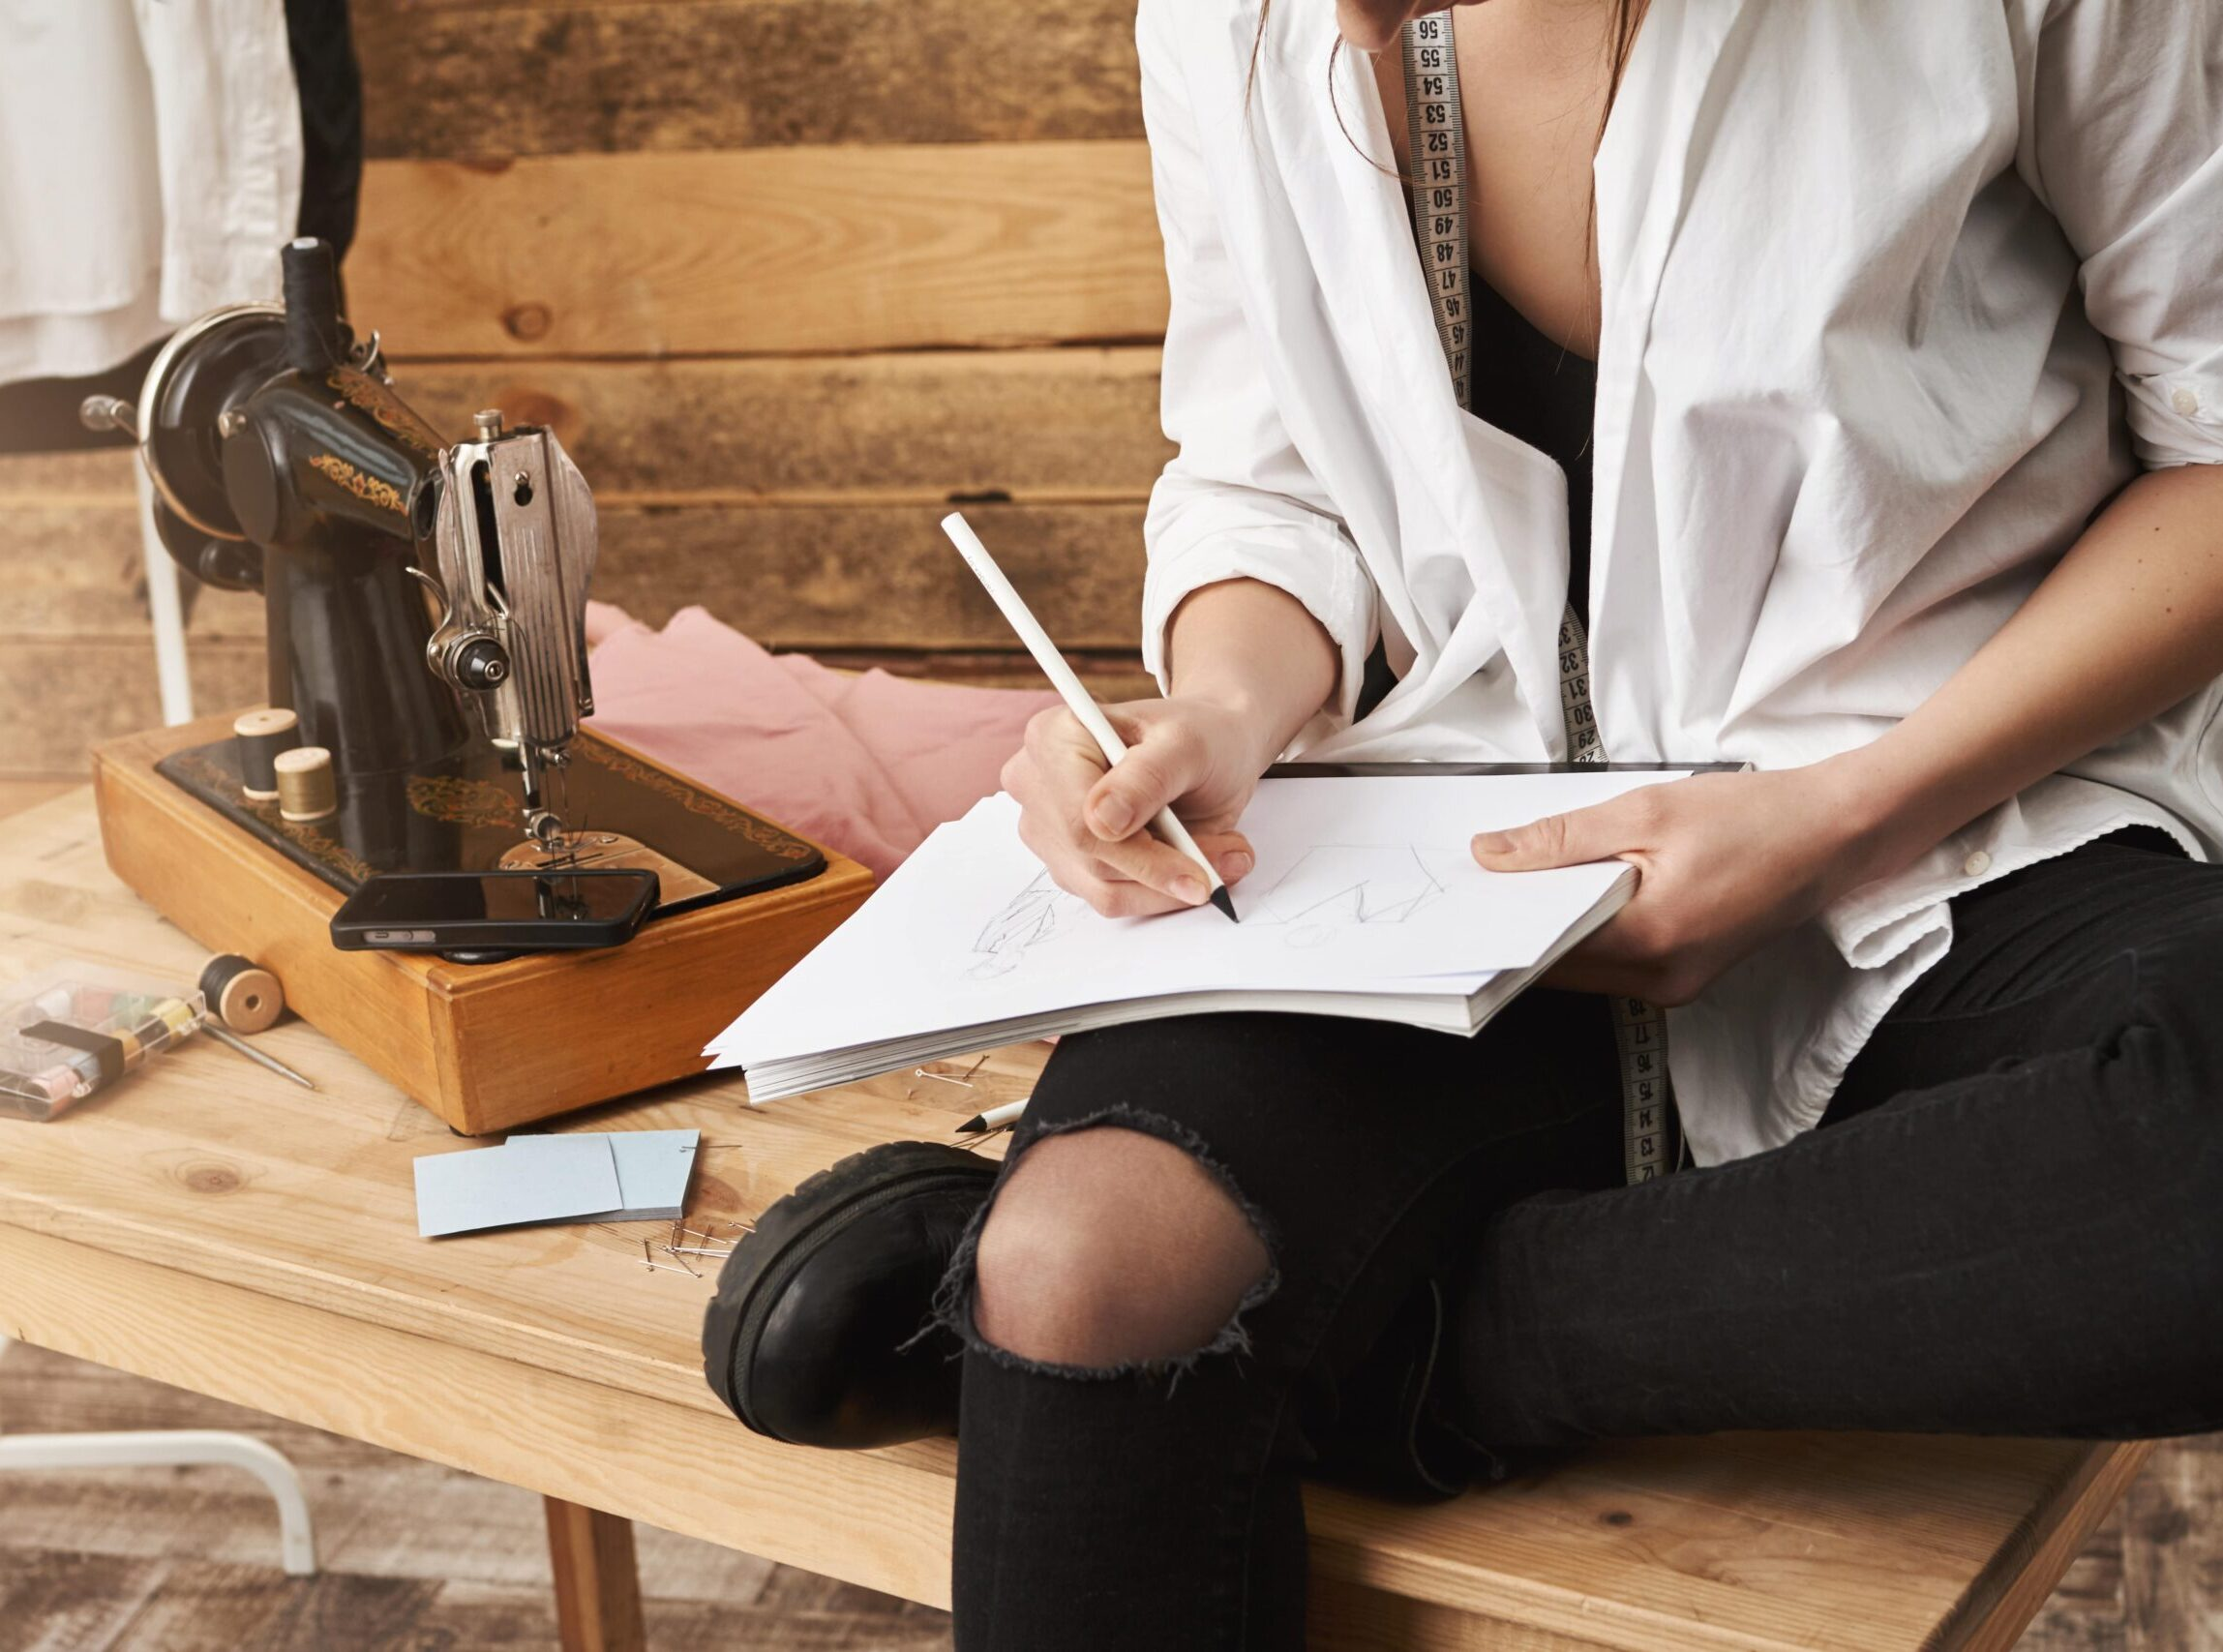 https://doradcy365.pl/wp-content/uploads/2020/11/when-hobby-become-real-work-cropped-shot-of-creative-female-designer-of-clothes-sitting-on-table-near-sewing-machine-in-her-workshop-making-notes-or-planning-new-design-for-her-clothing-line-min-scaled-e1605608829168.jpg